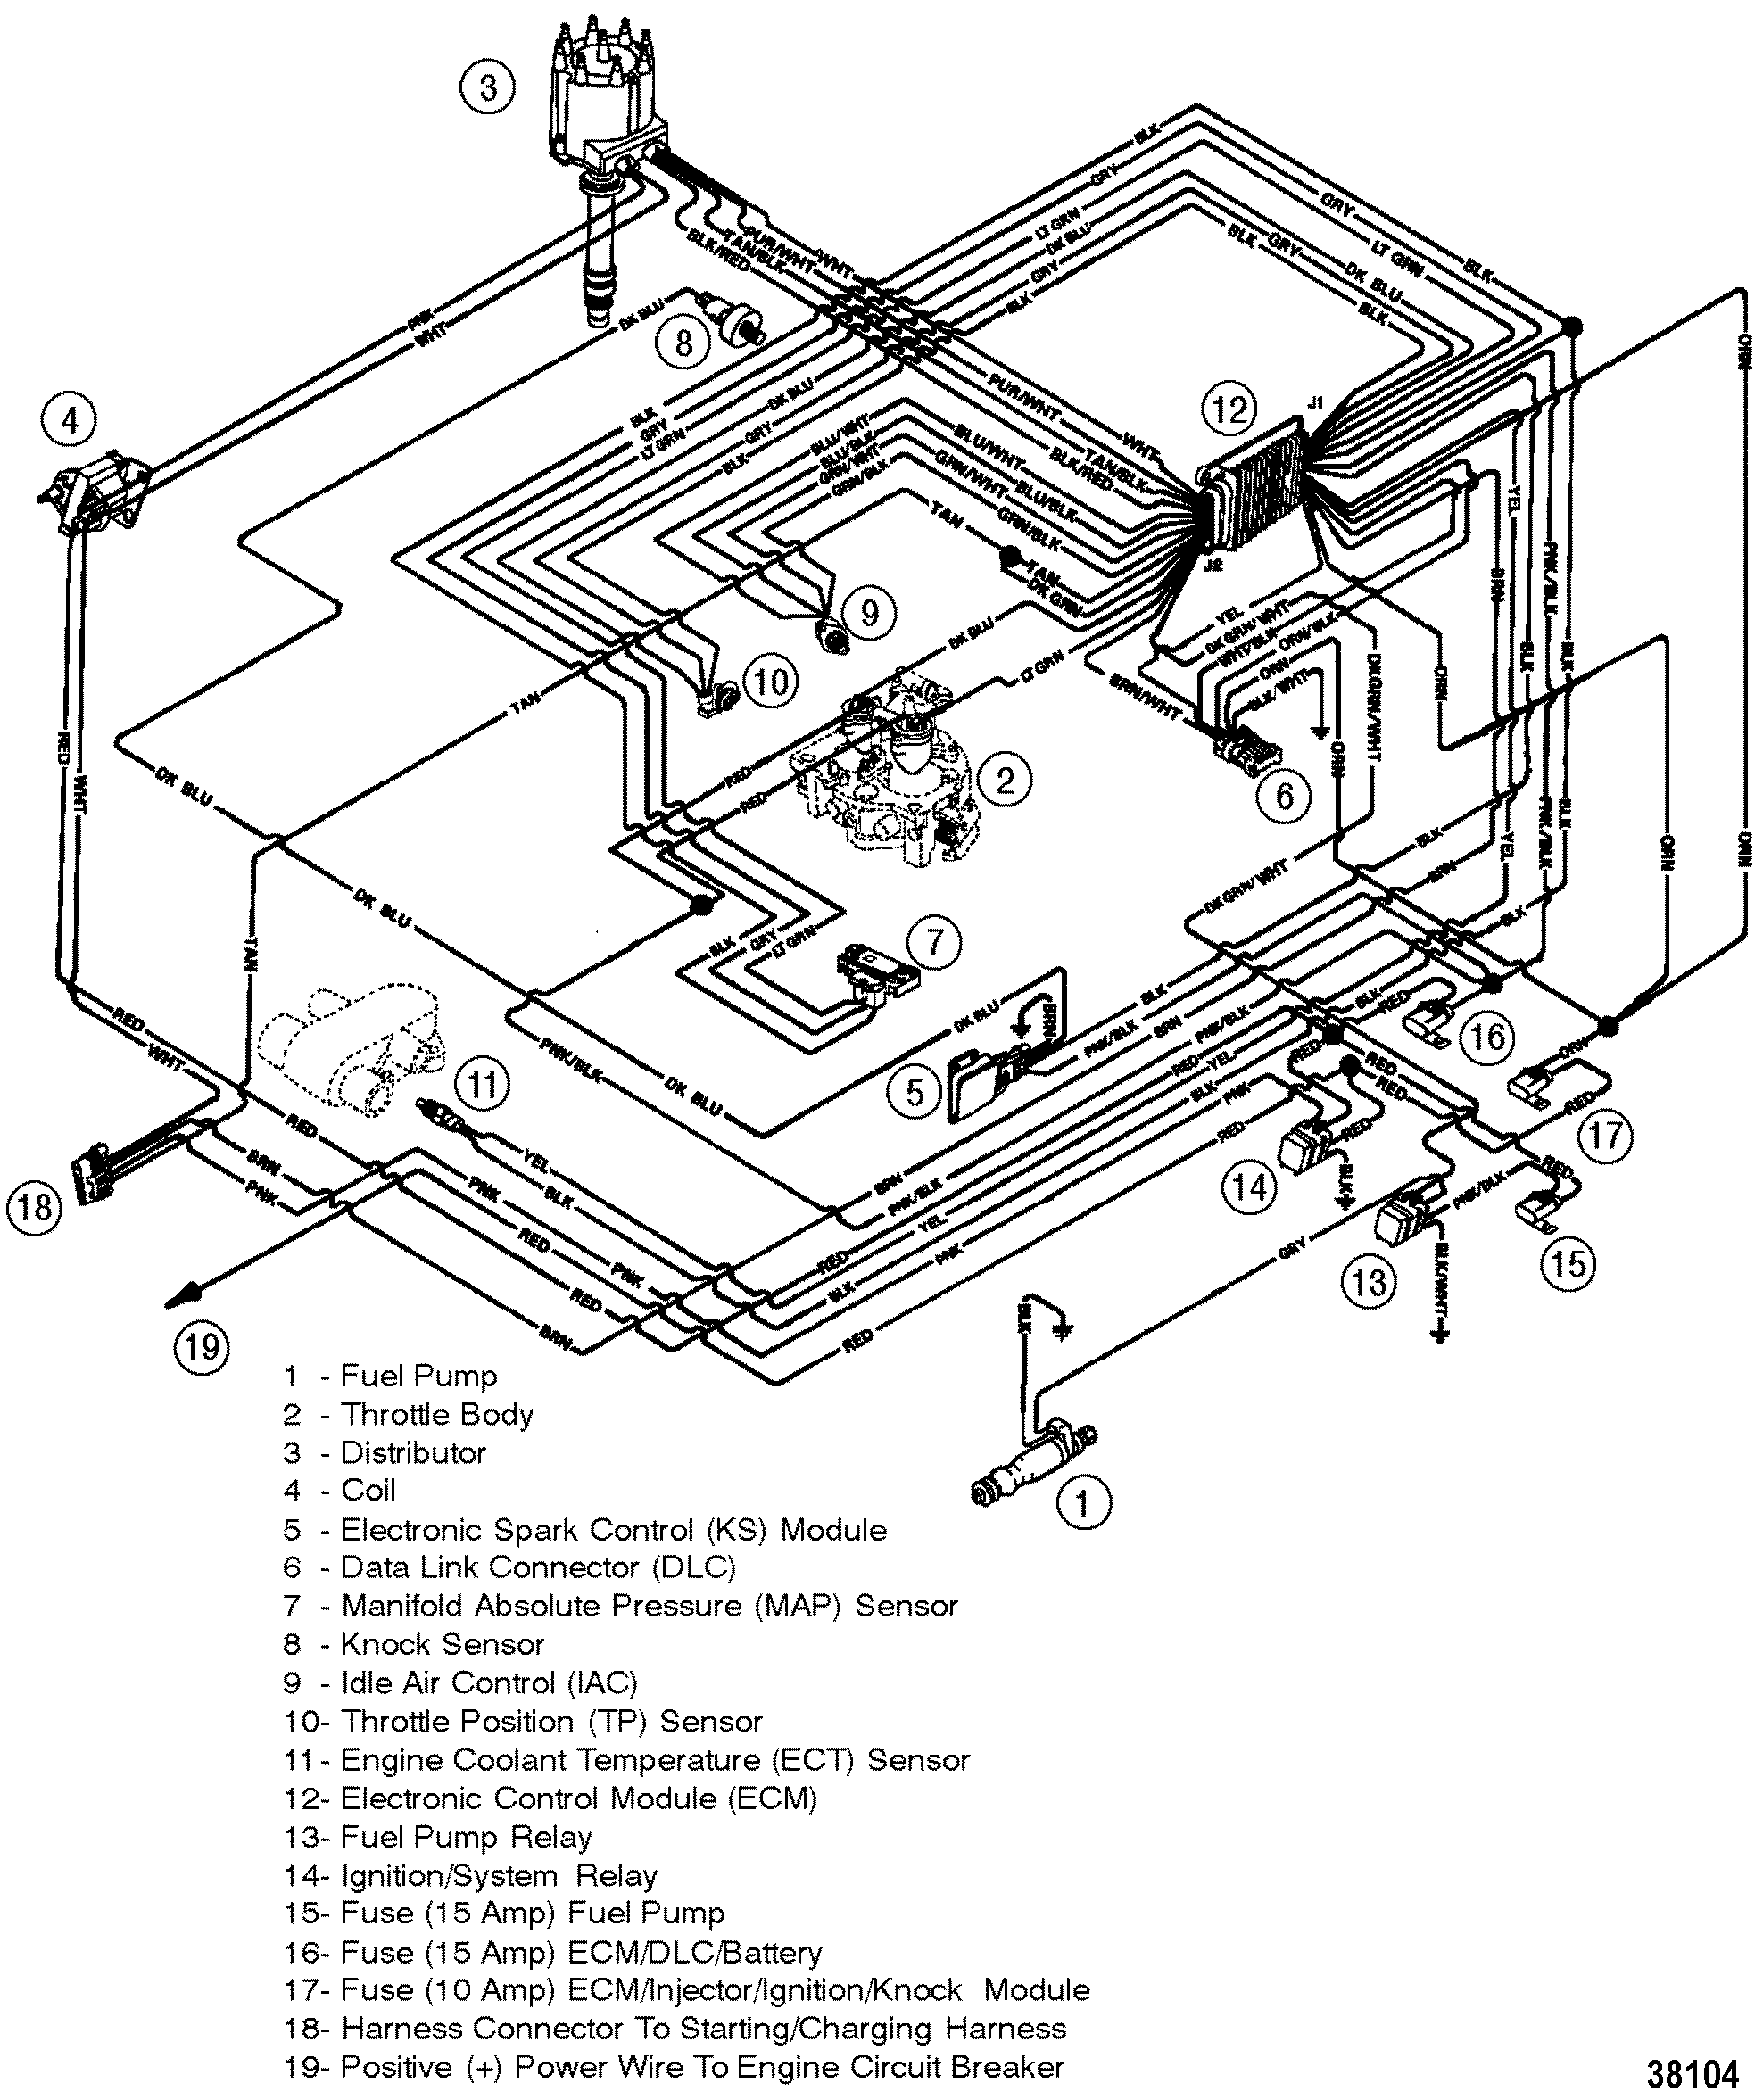 38104?resize\\\=665%2C792 mercruiser 140 wiring diagram mercruiser wiring diagrams collection 1982 260 mercruiser engine wiring diagram at readyjetset.co